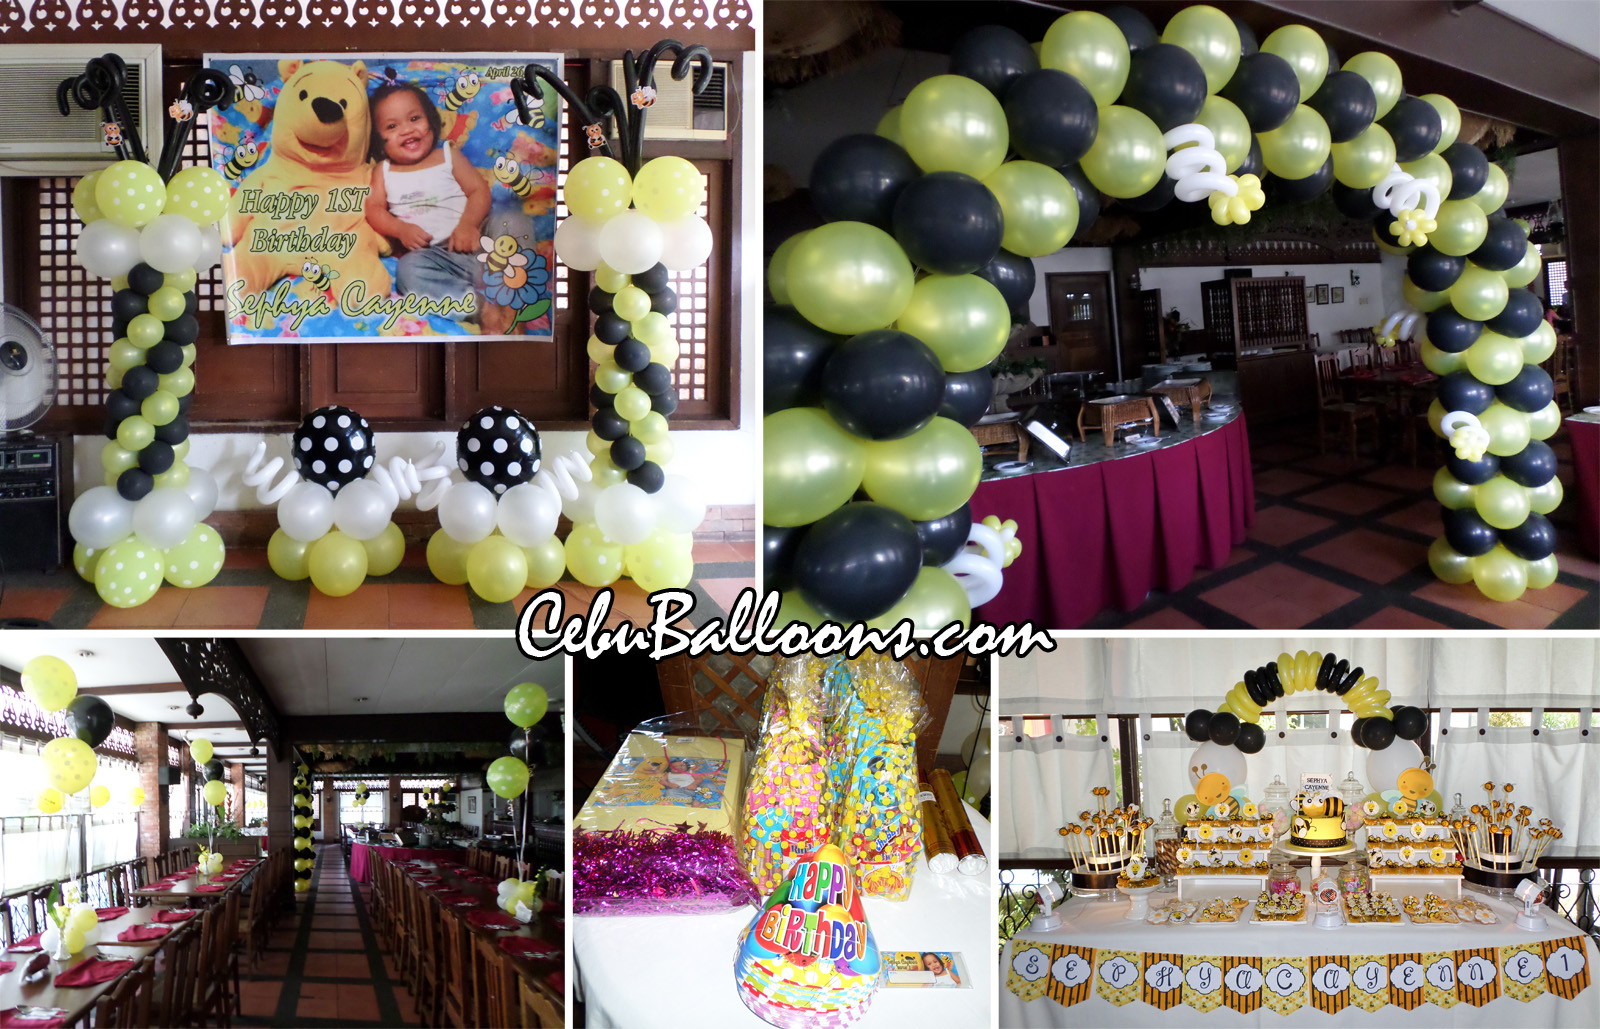 Bumble Bee Balloon Decoration Party Supplies At Patio Isabel Banilad